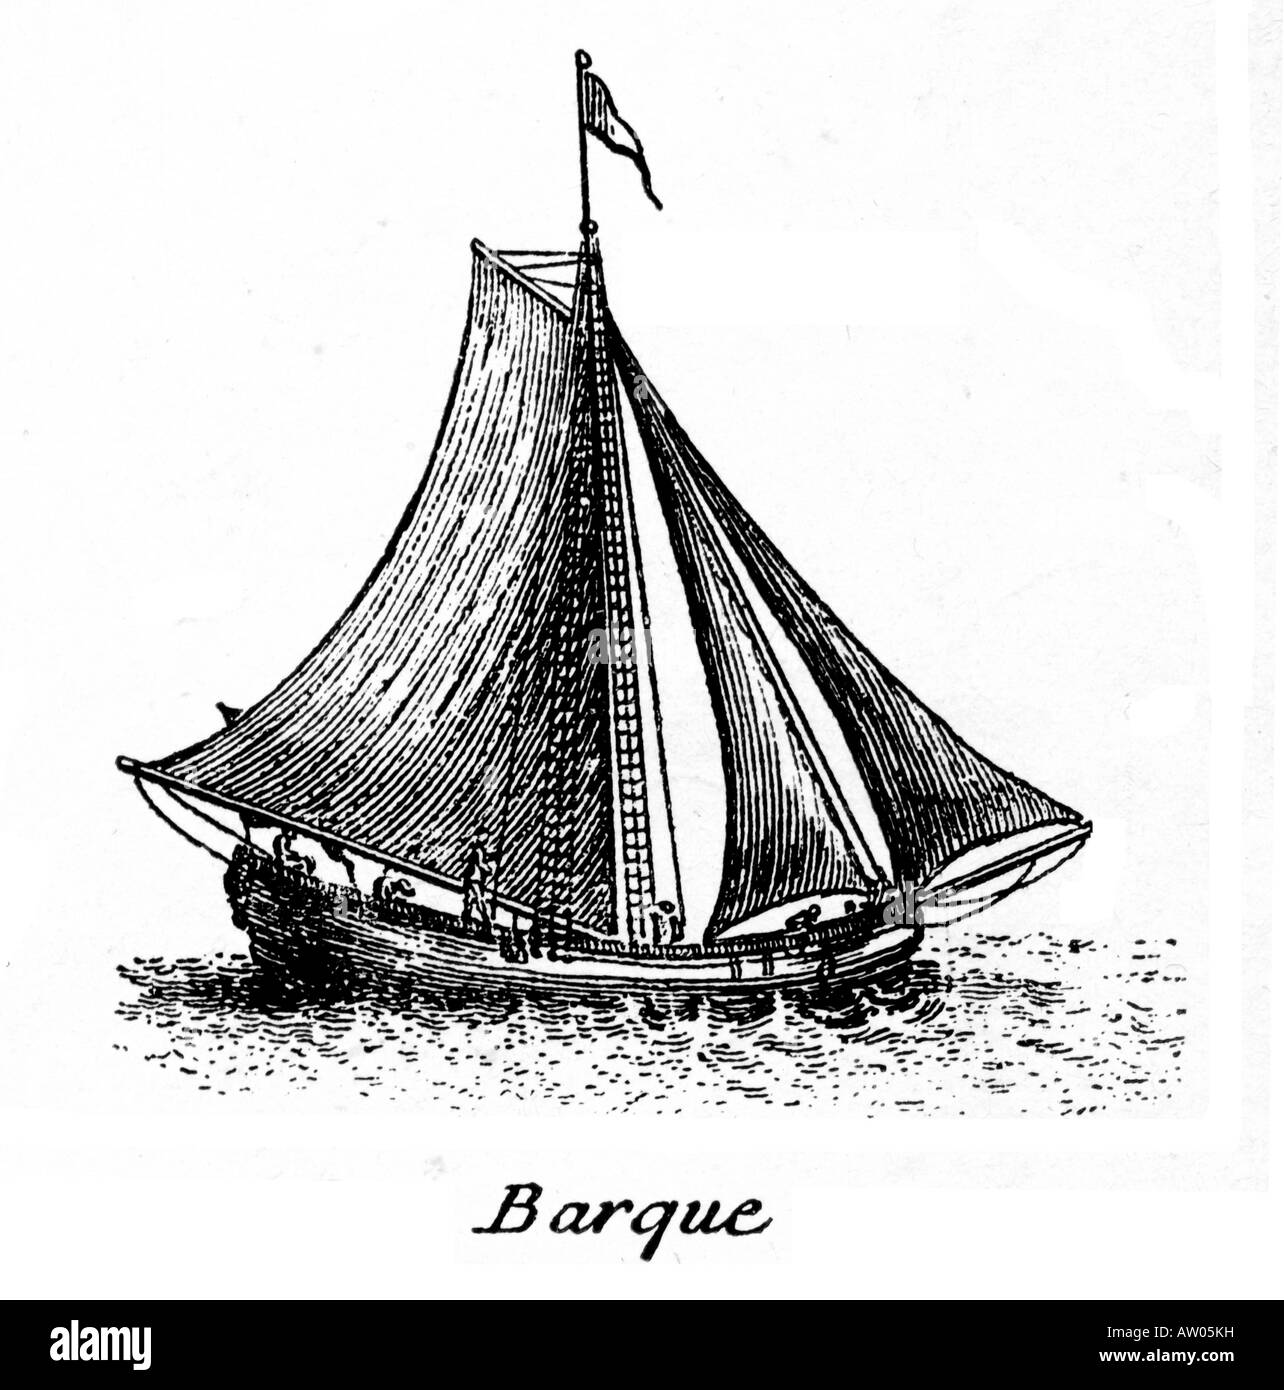 Barque the small vessel sailed by pirates and buccaneers in the Caribbean around 1700 to attack Spanish treasure - Stock Image